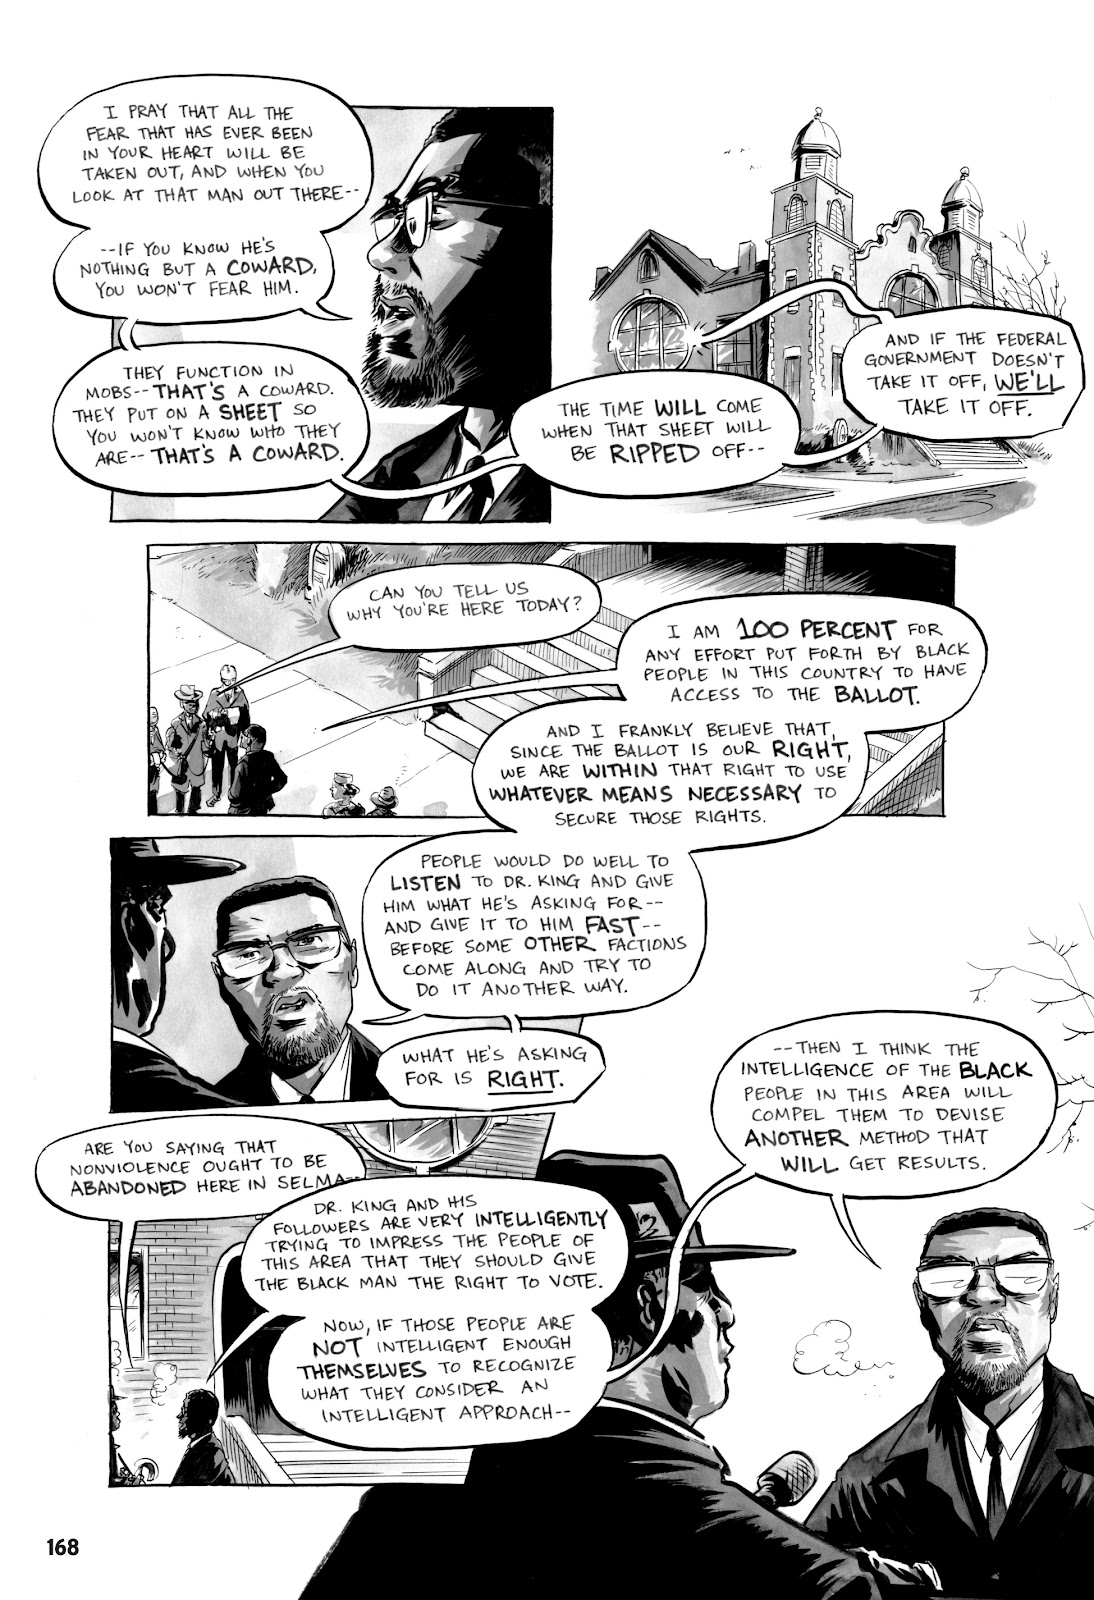 March 3 Page 162